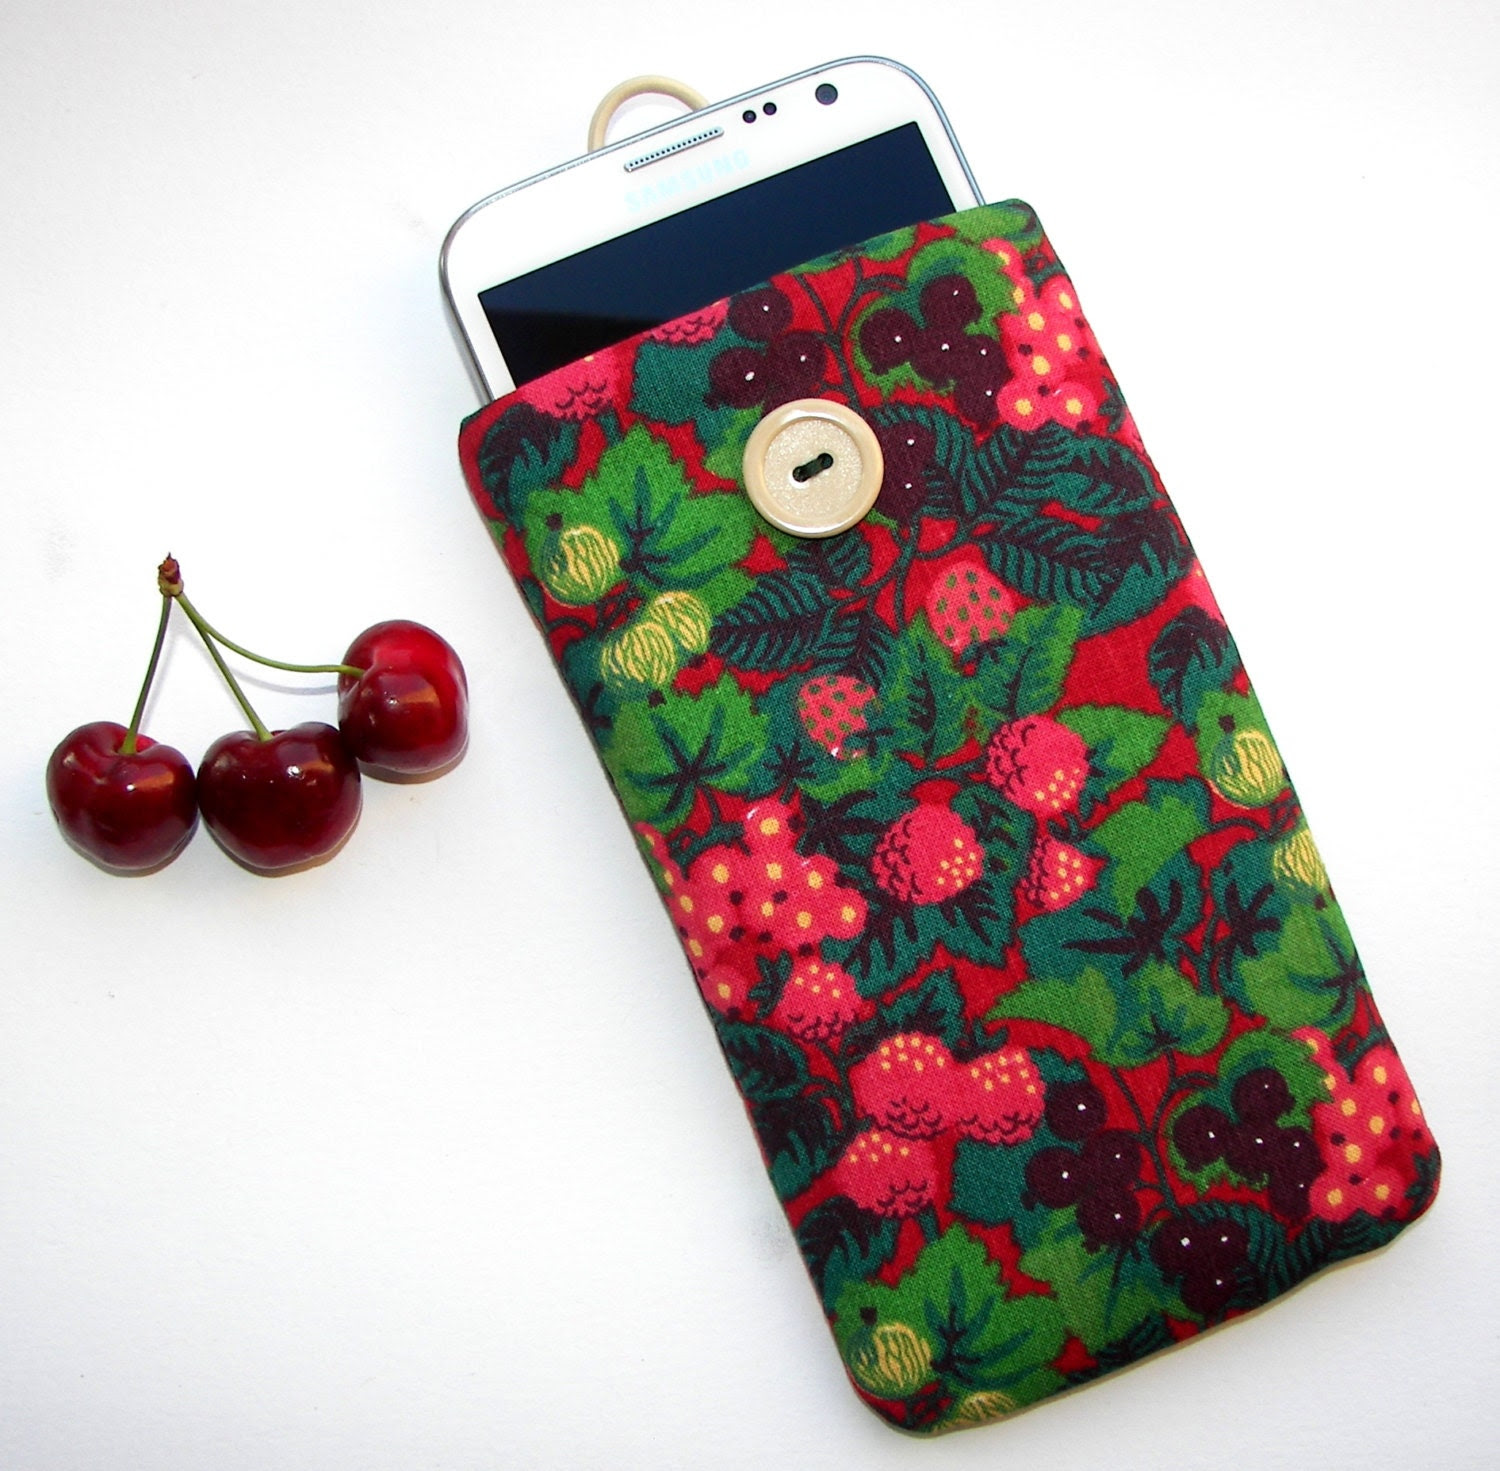 iPhone 4/ 4s/ 5 cover case sleeve pouch berries forest fruit pattern cell phone cozy, padded cover - BlackCherriesShop